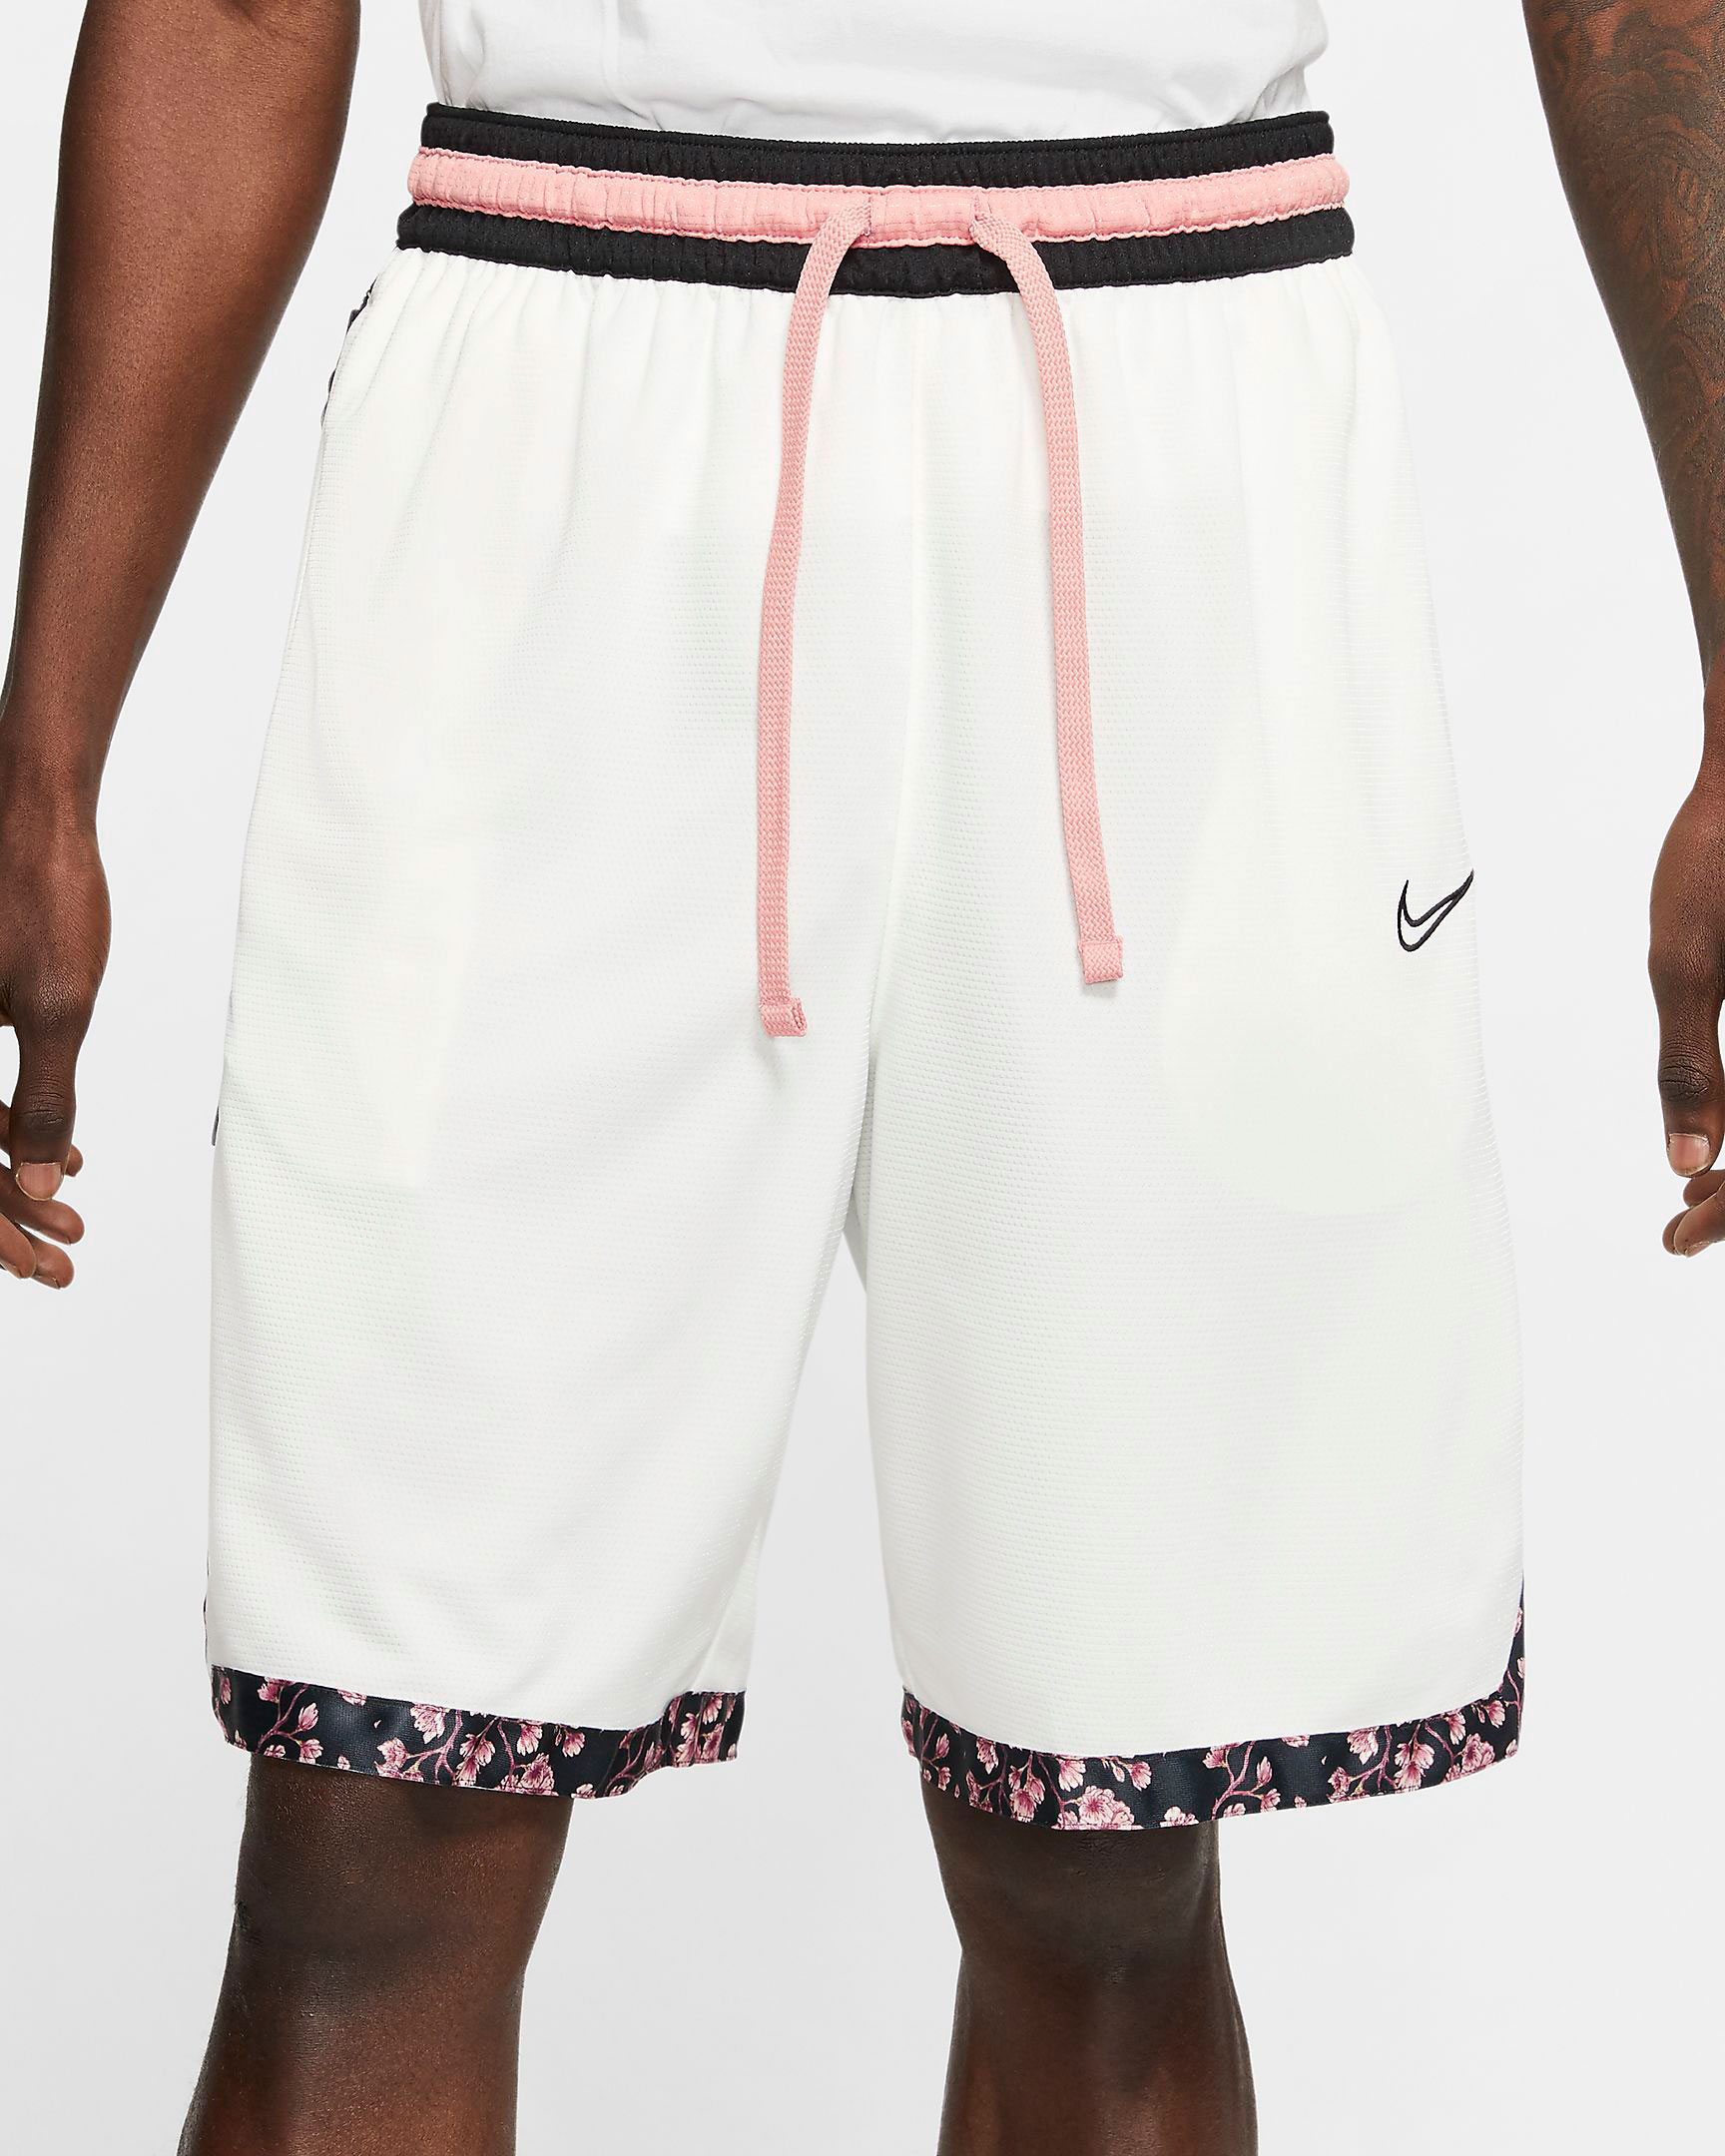 kd-12-aunt-pearl-nike-shorts-1